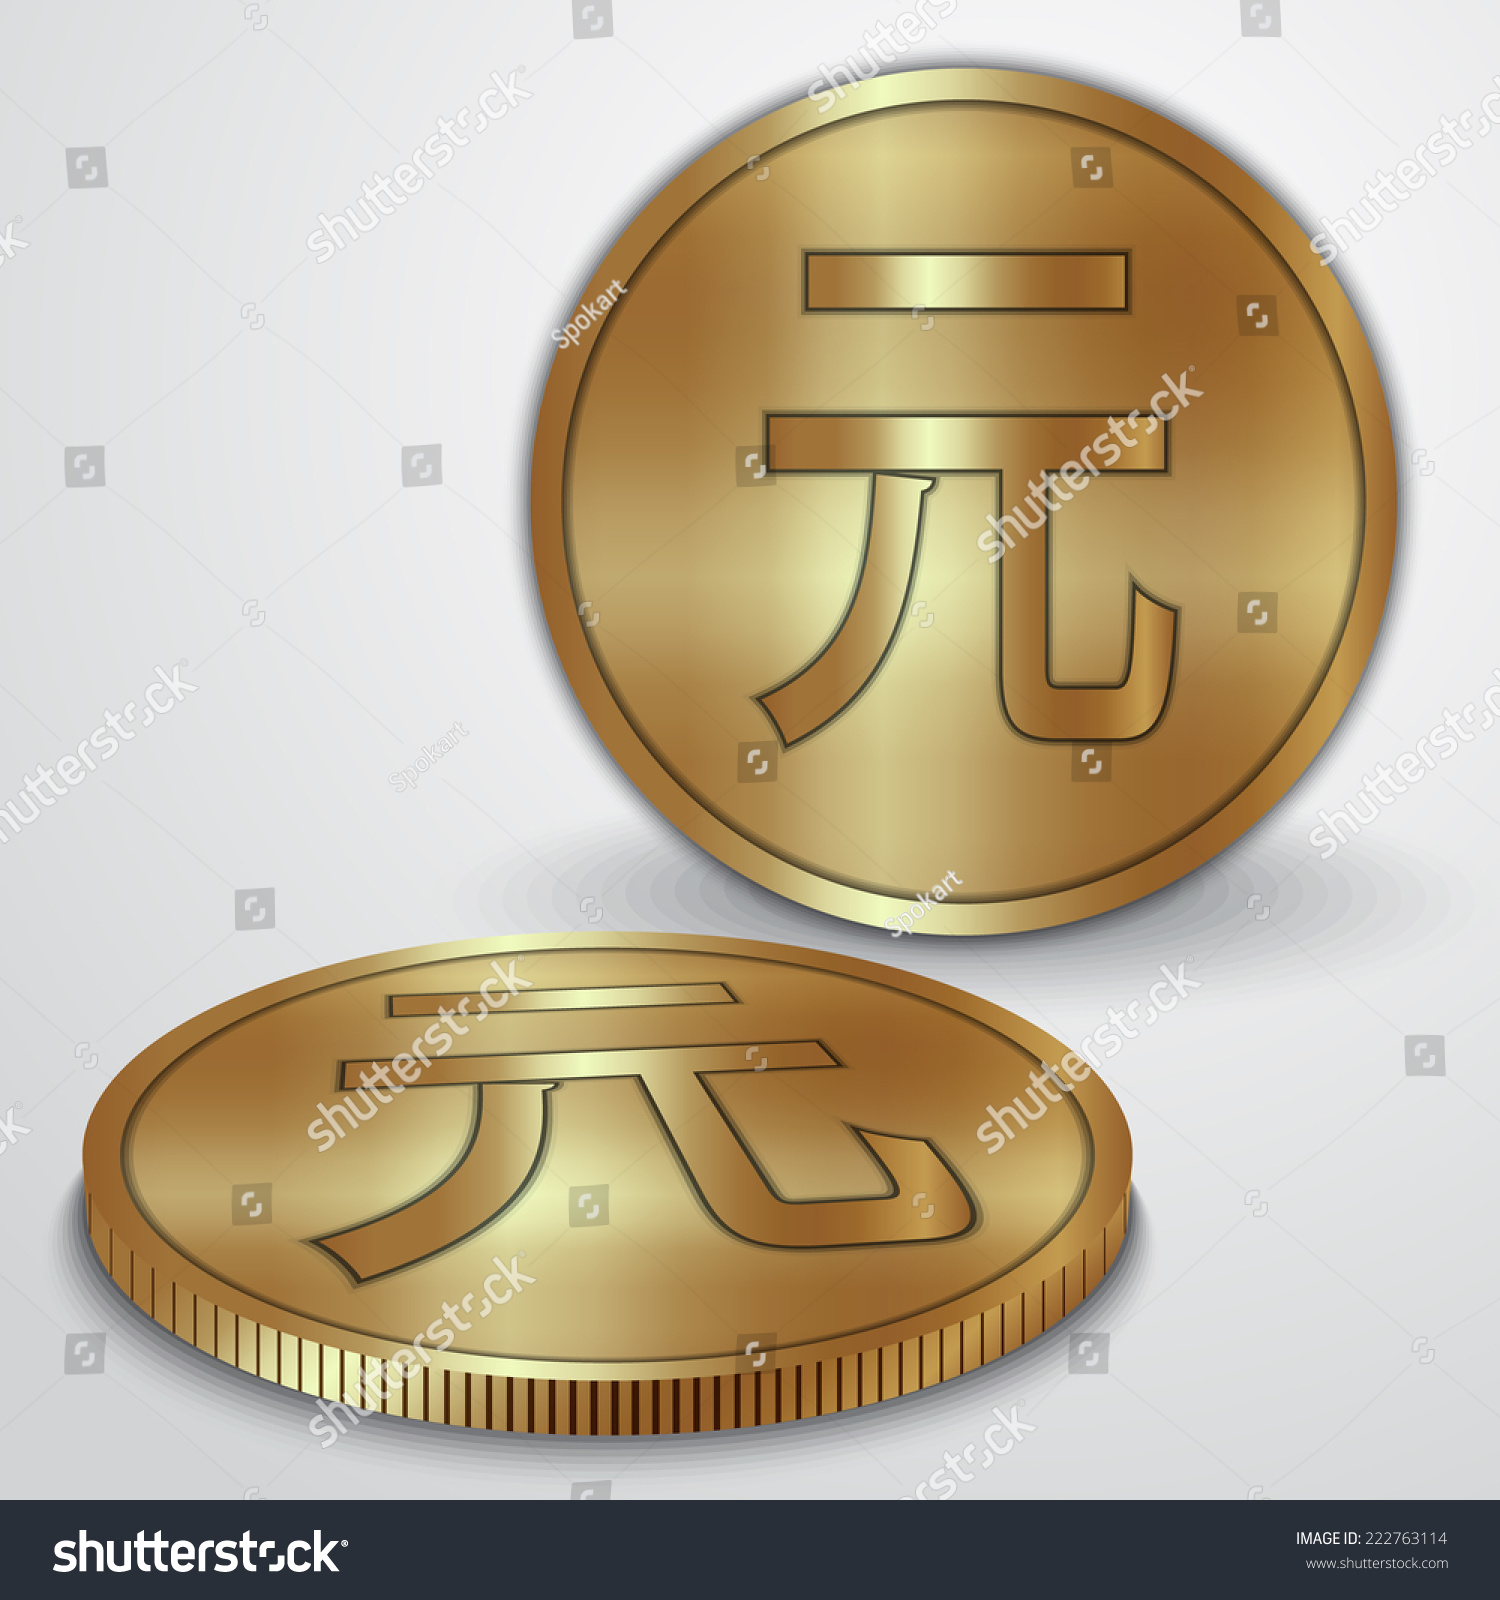 Cny currency symbol choice image symbol and sign ideas vector illustration golden coins chinese yan stock vector vector illustration of golden coins with chinese yan biocorpaavc